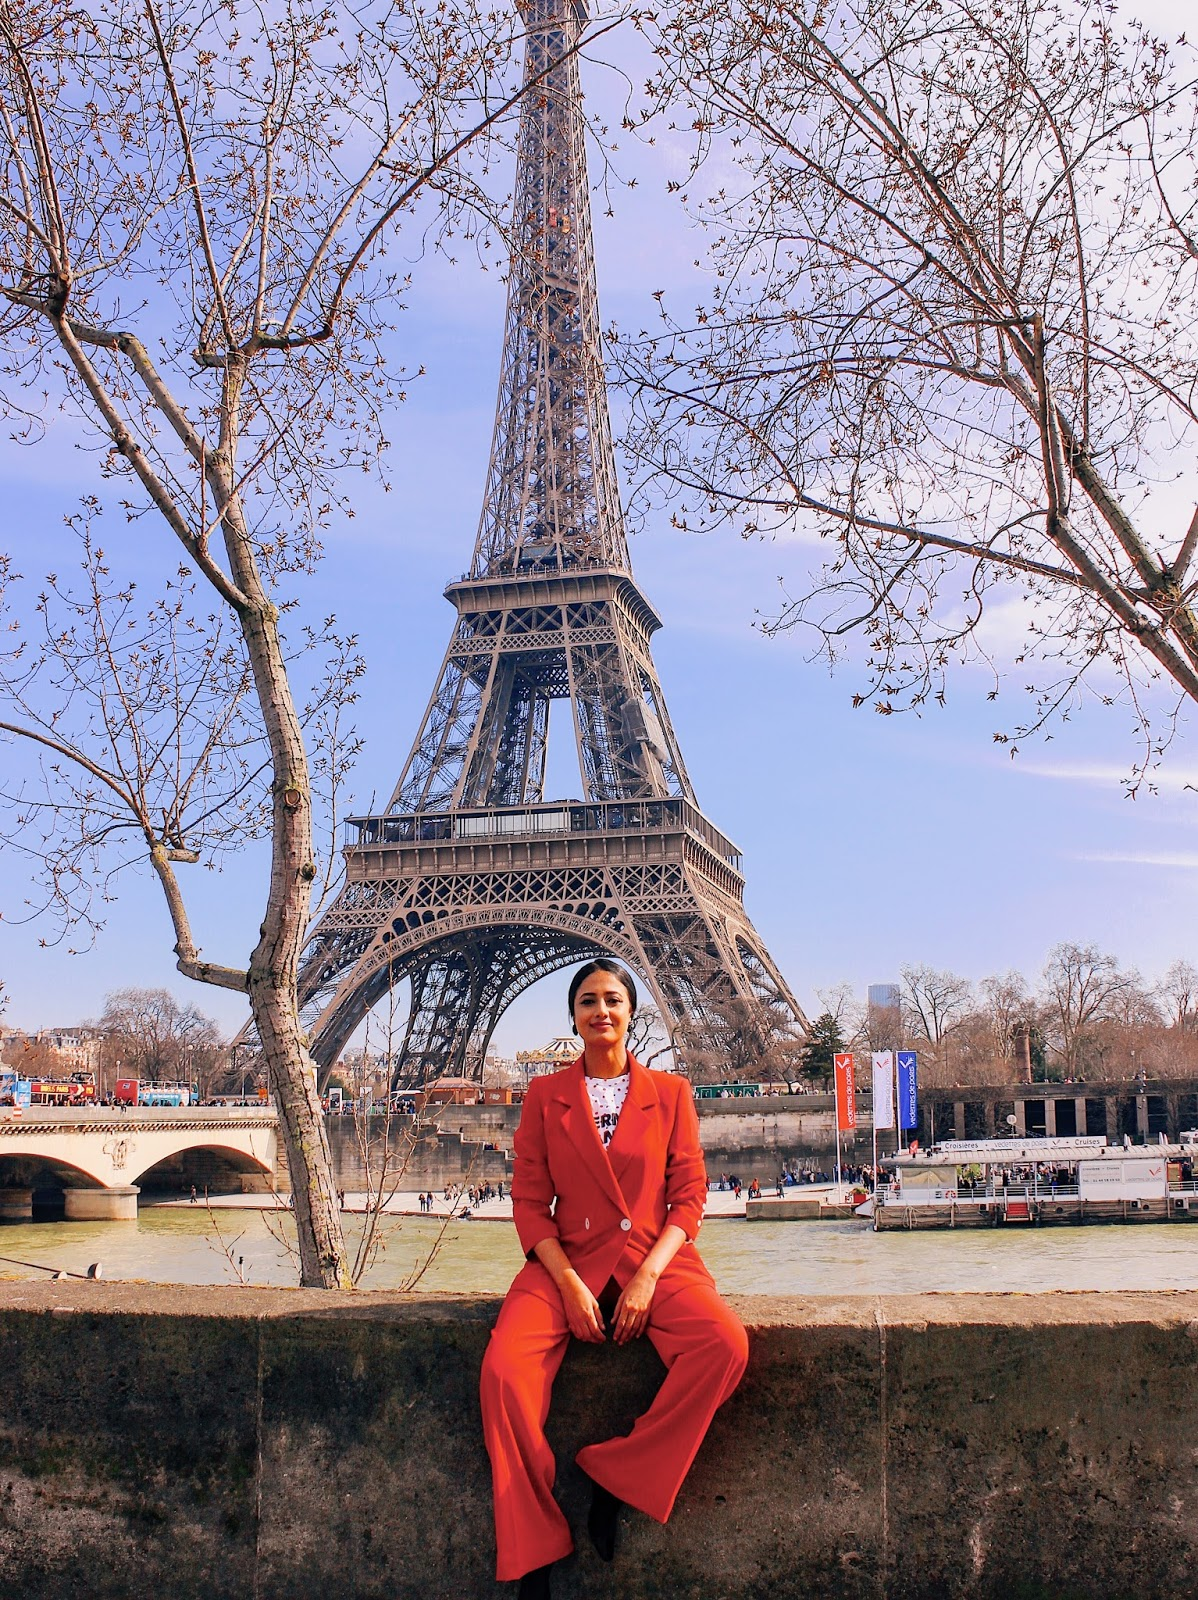 zara pant suit, zara suit, red matching set, pant suit, trouser suit, red pant suit, red trouser suit, style a suit, effortless chic, casual chic, wear in paris, paris outfit, wide leg trouser, double breasted blazer, indian blogger, uk blog, sock boots, paris red